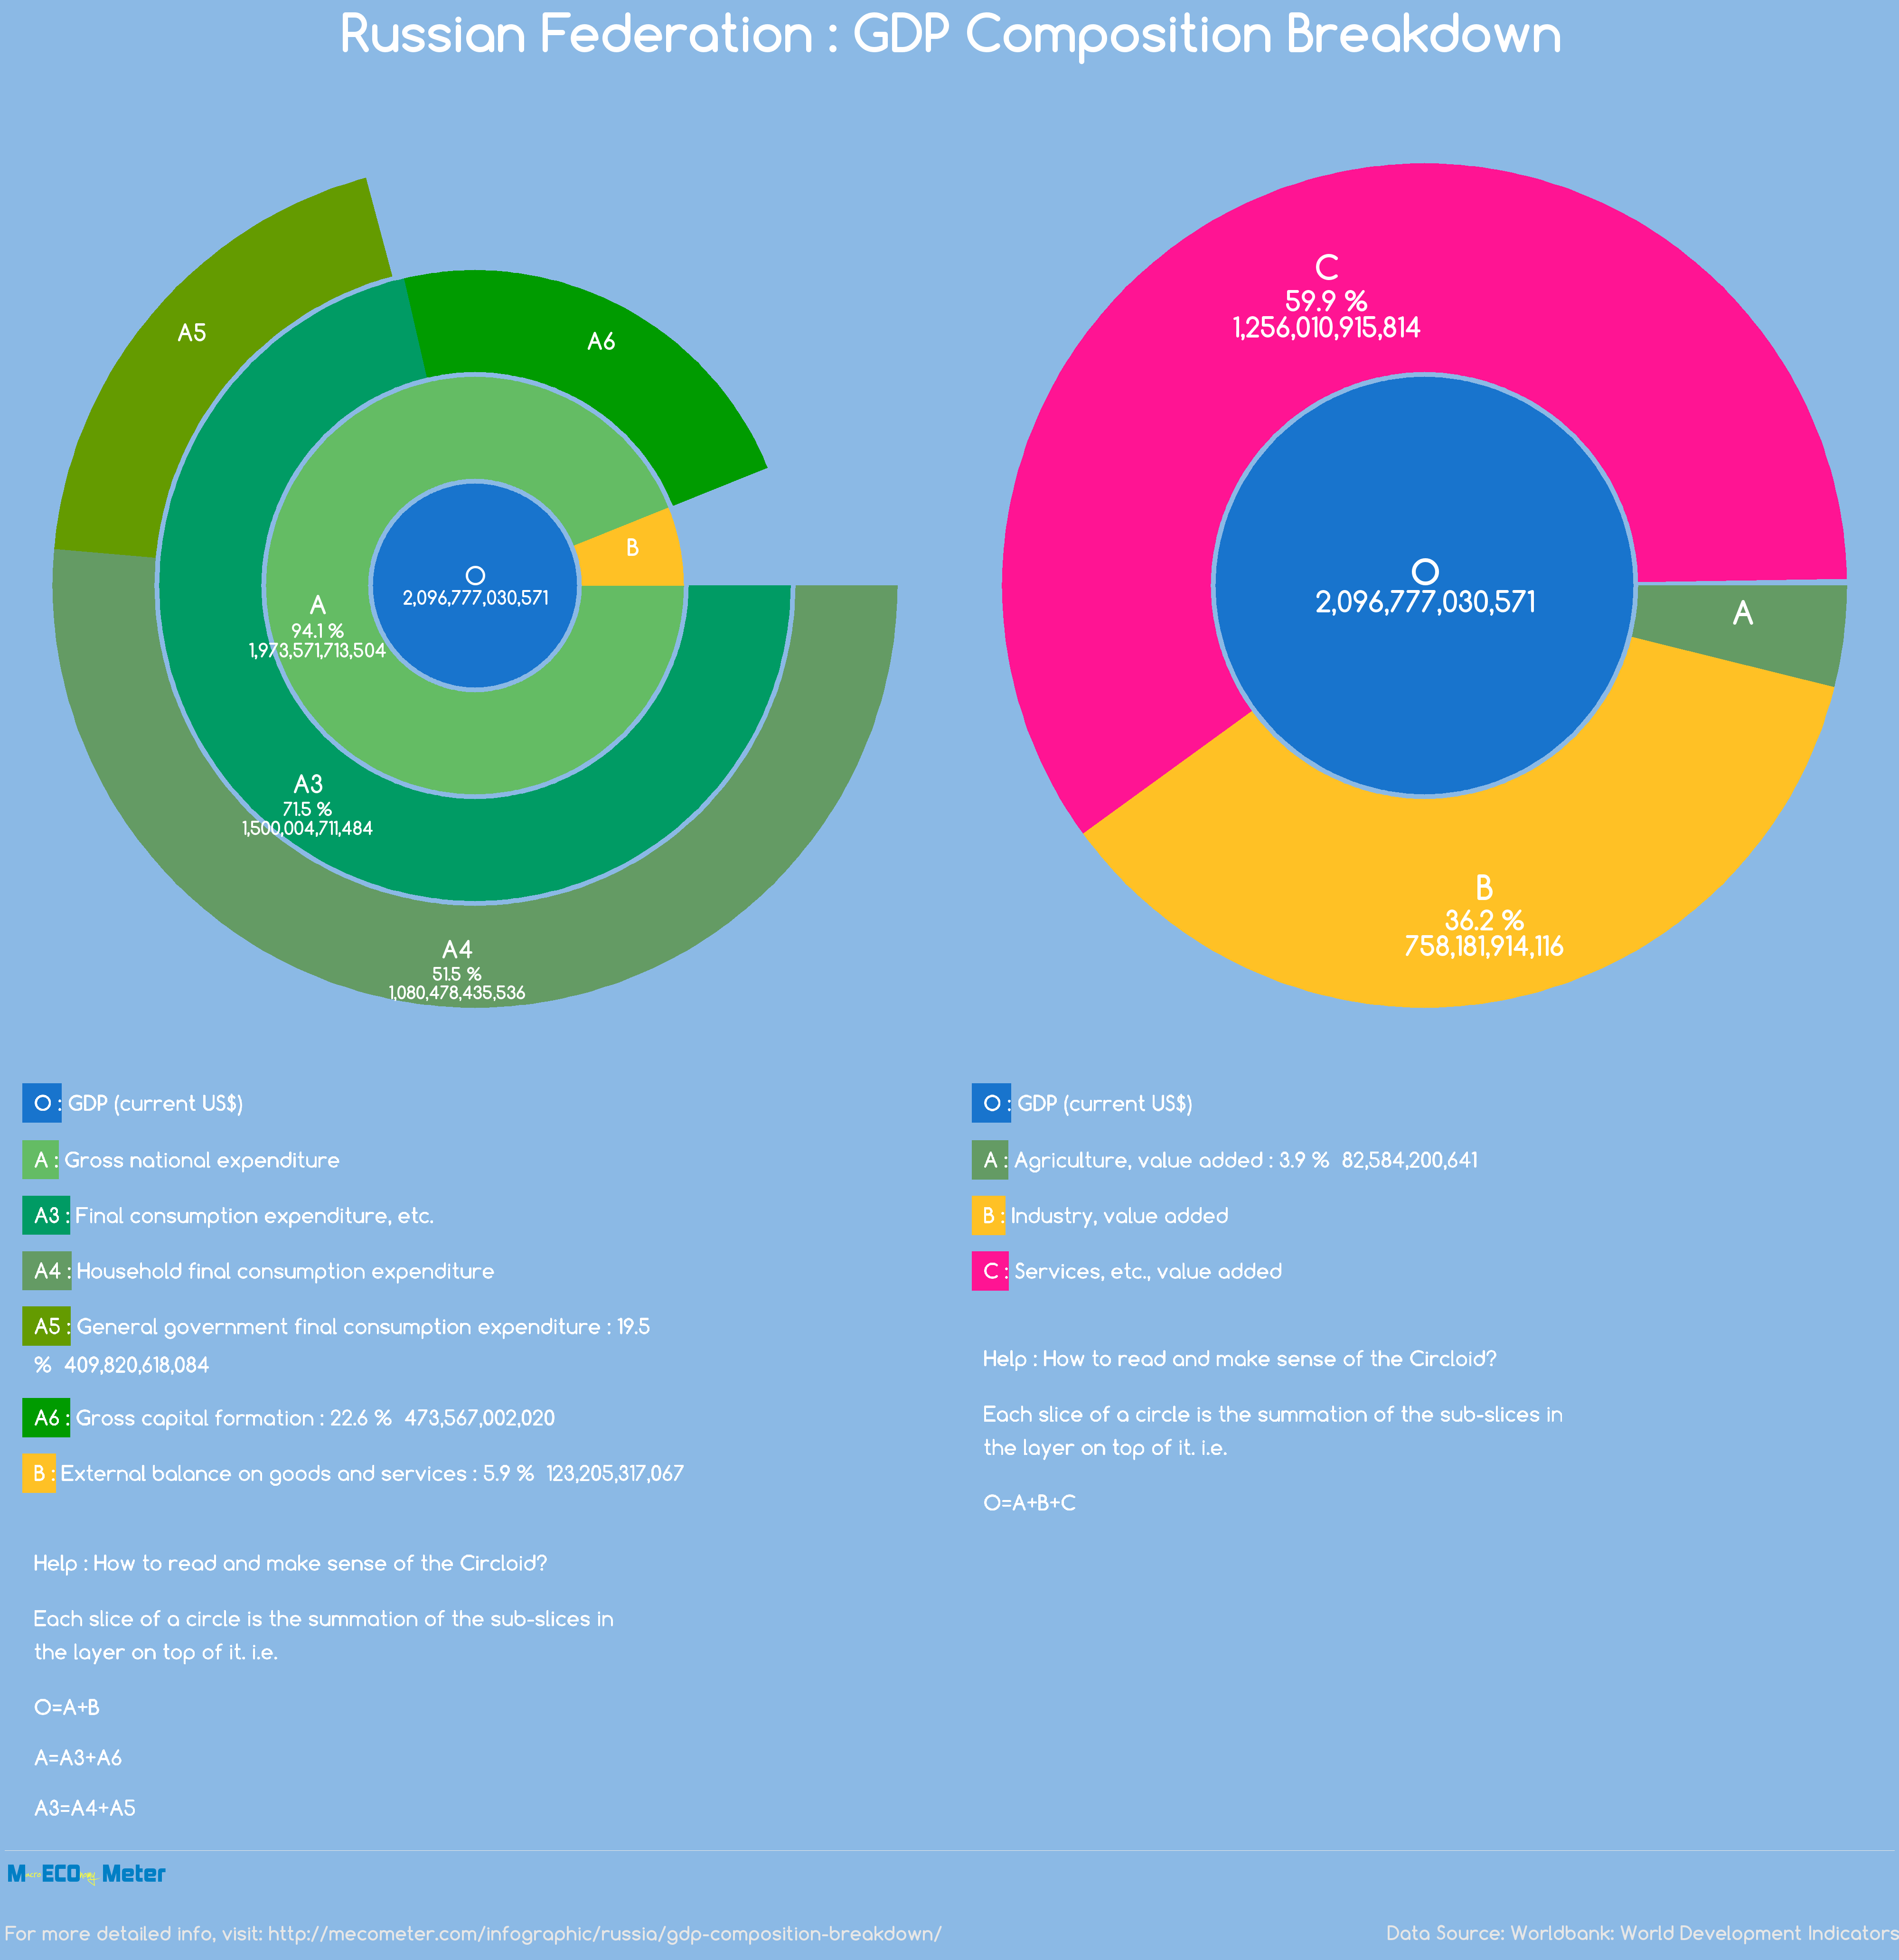 Russian Federation : GDP Composition Breakdown